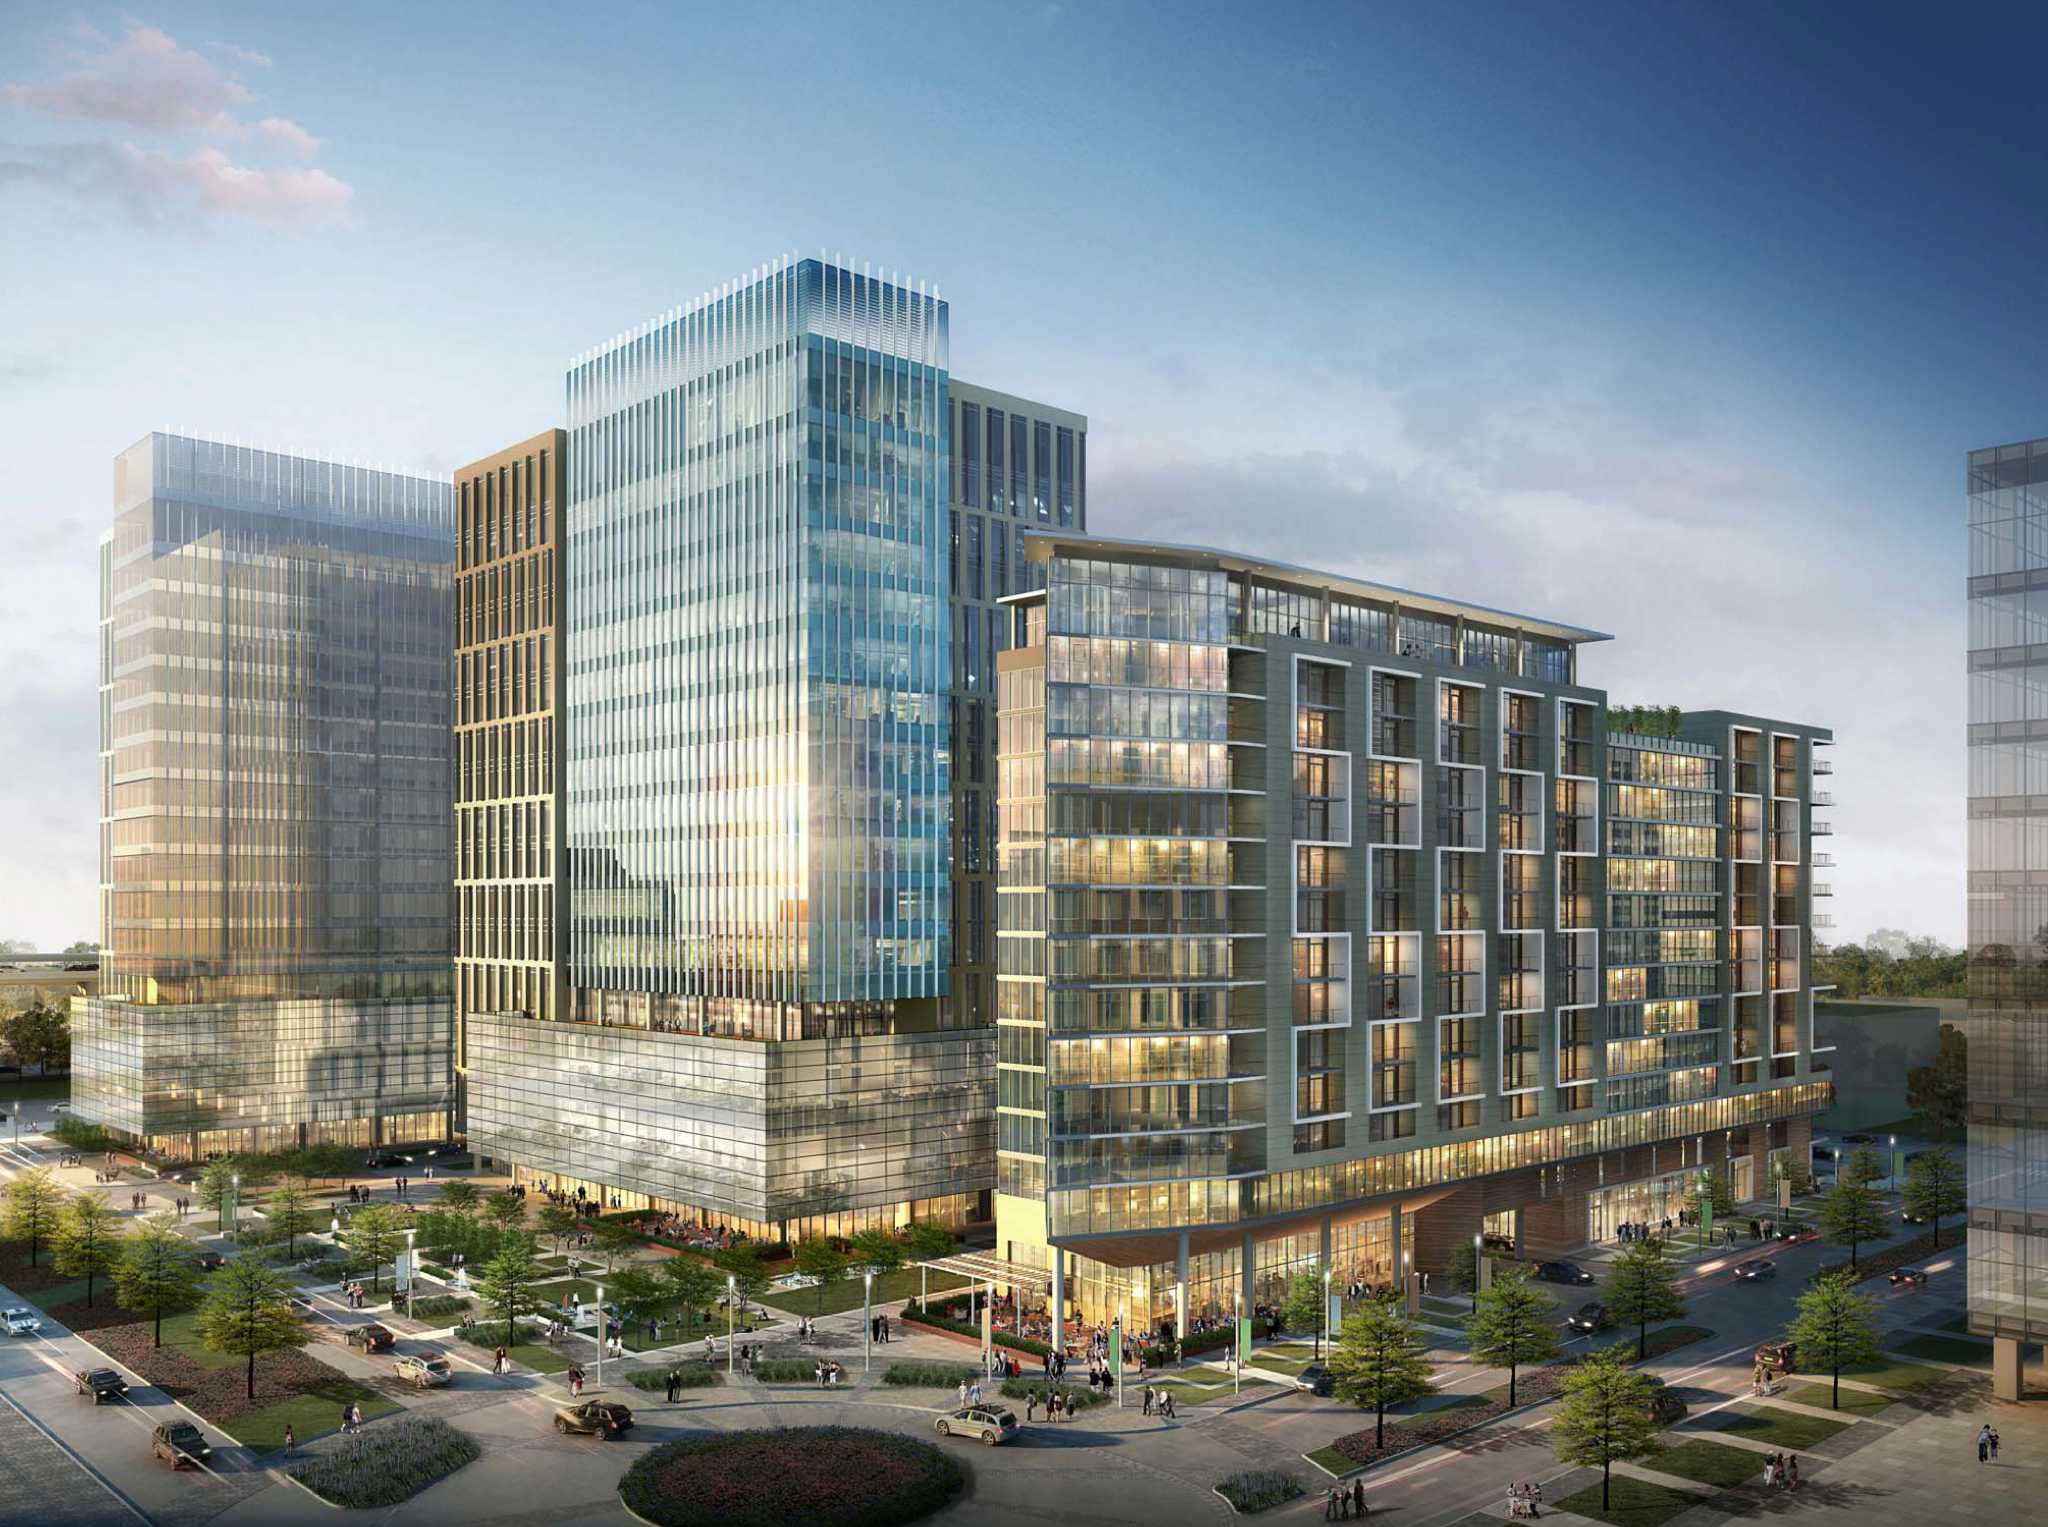 CityCentre expansion to include offices, retail and apartments